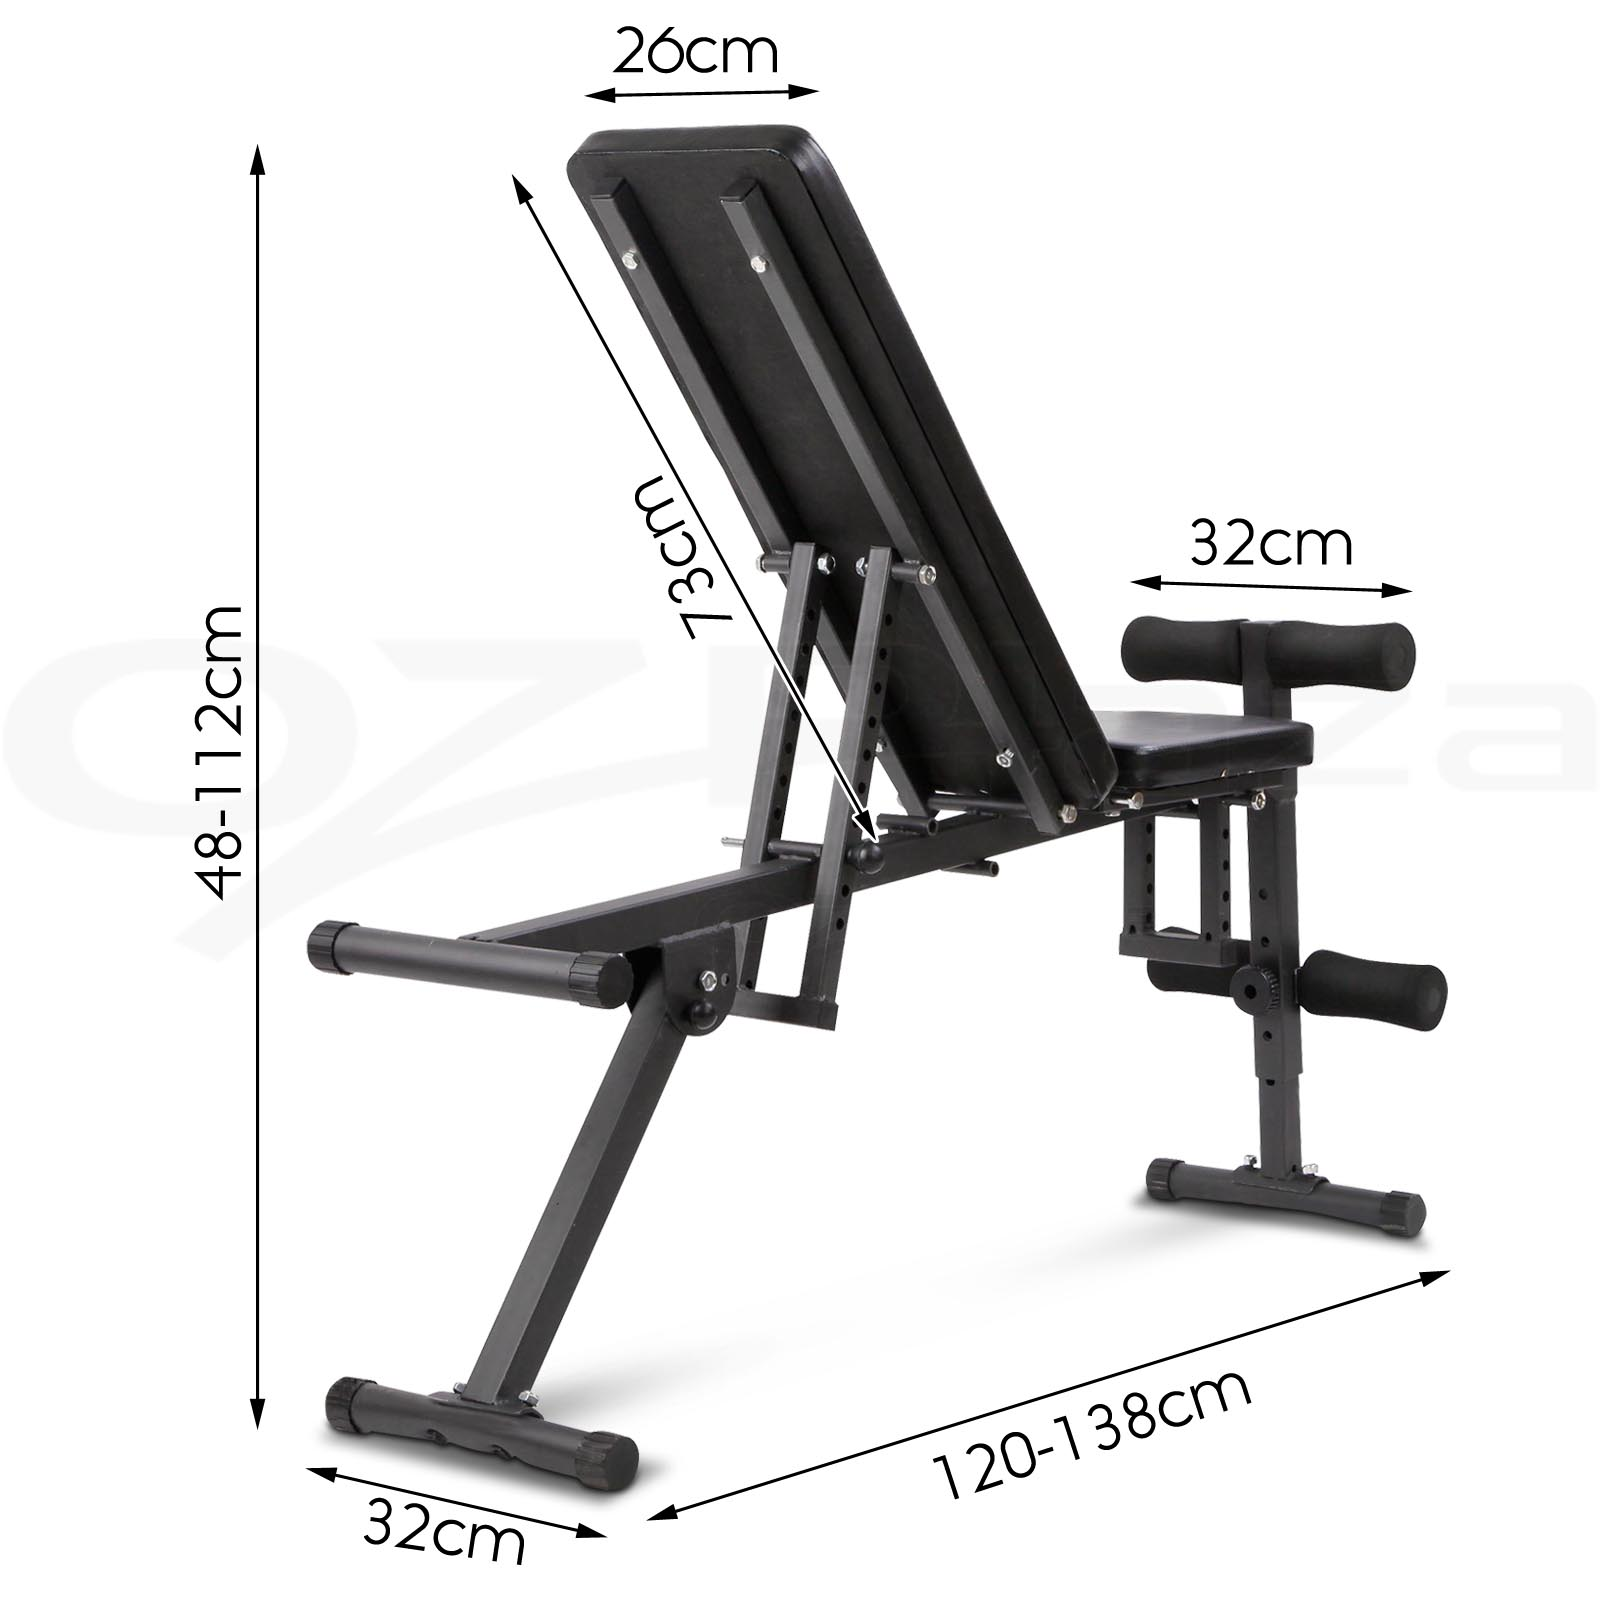 Adjustable weight fid bench flat incline decline home gym